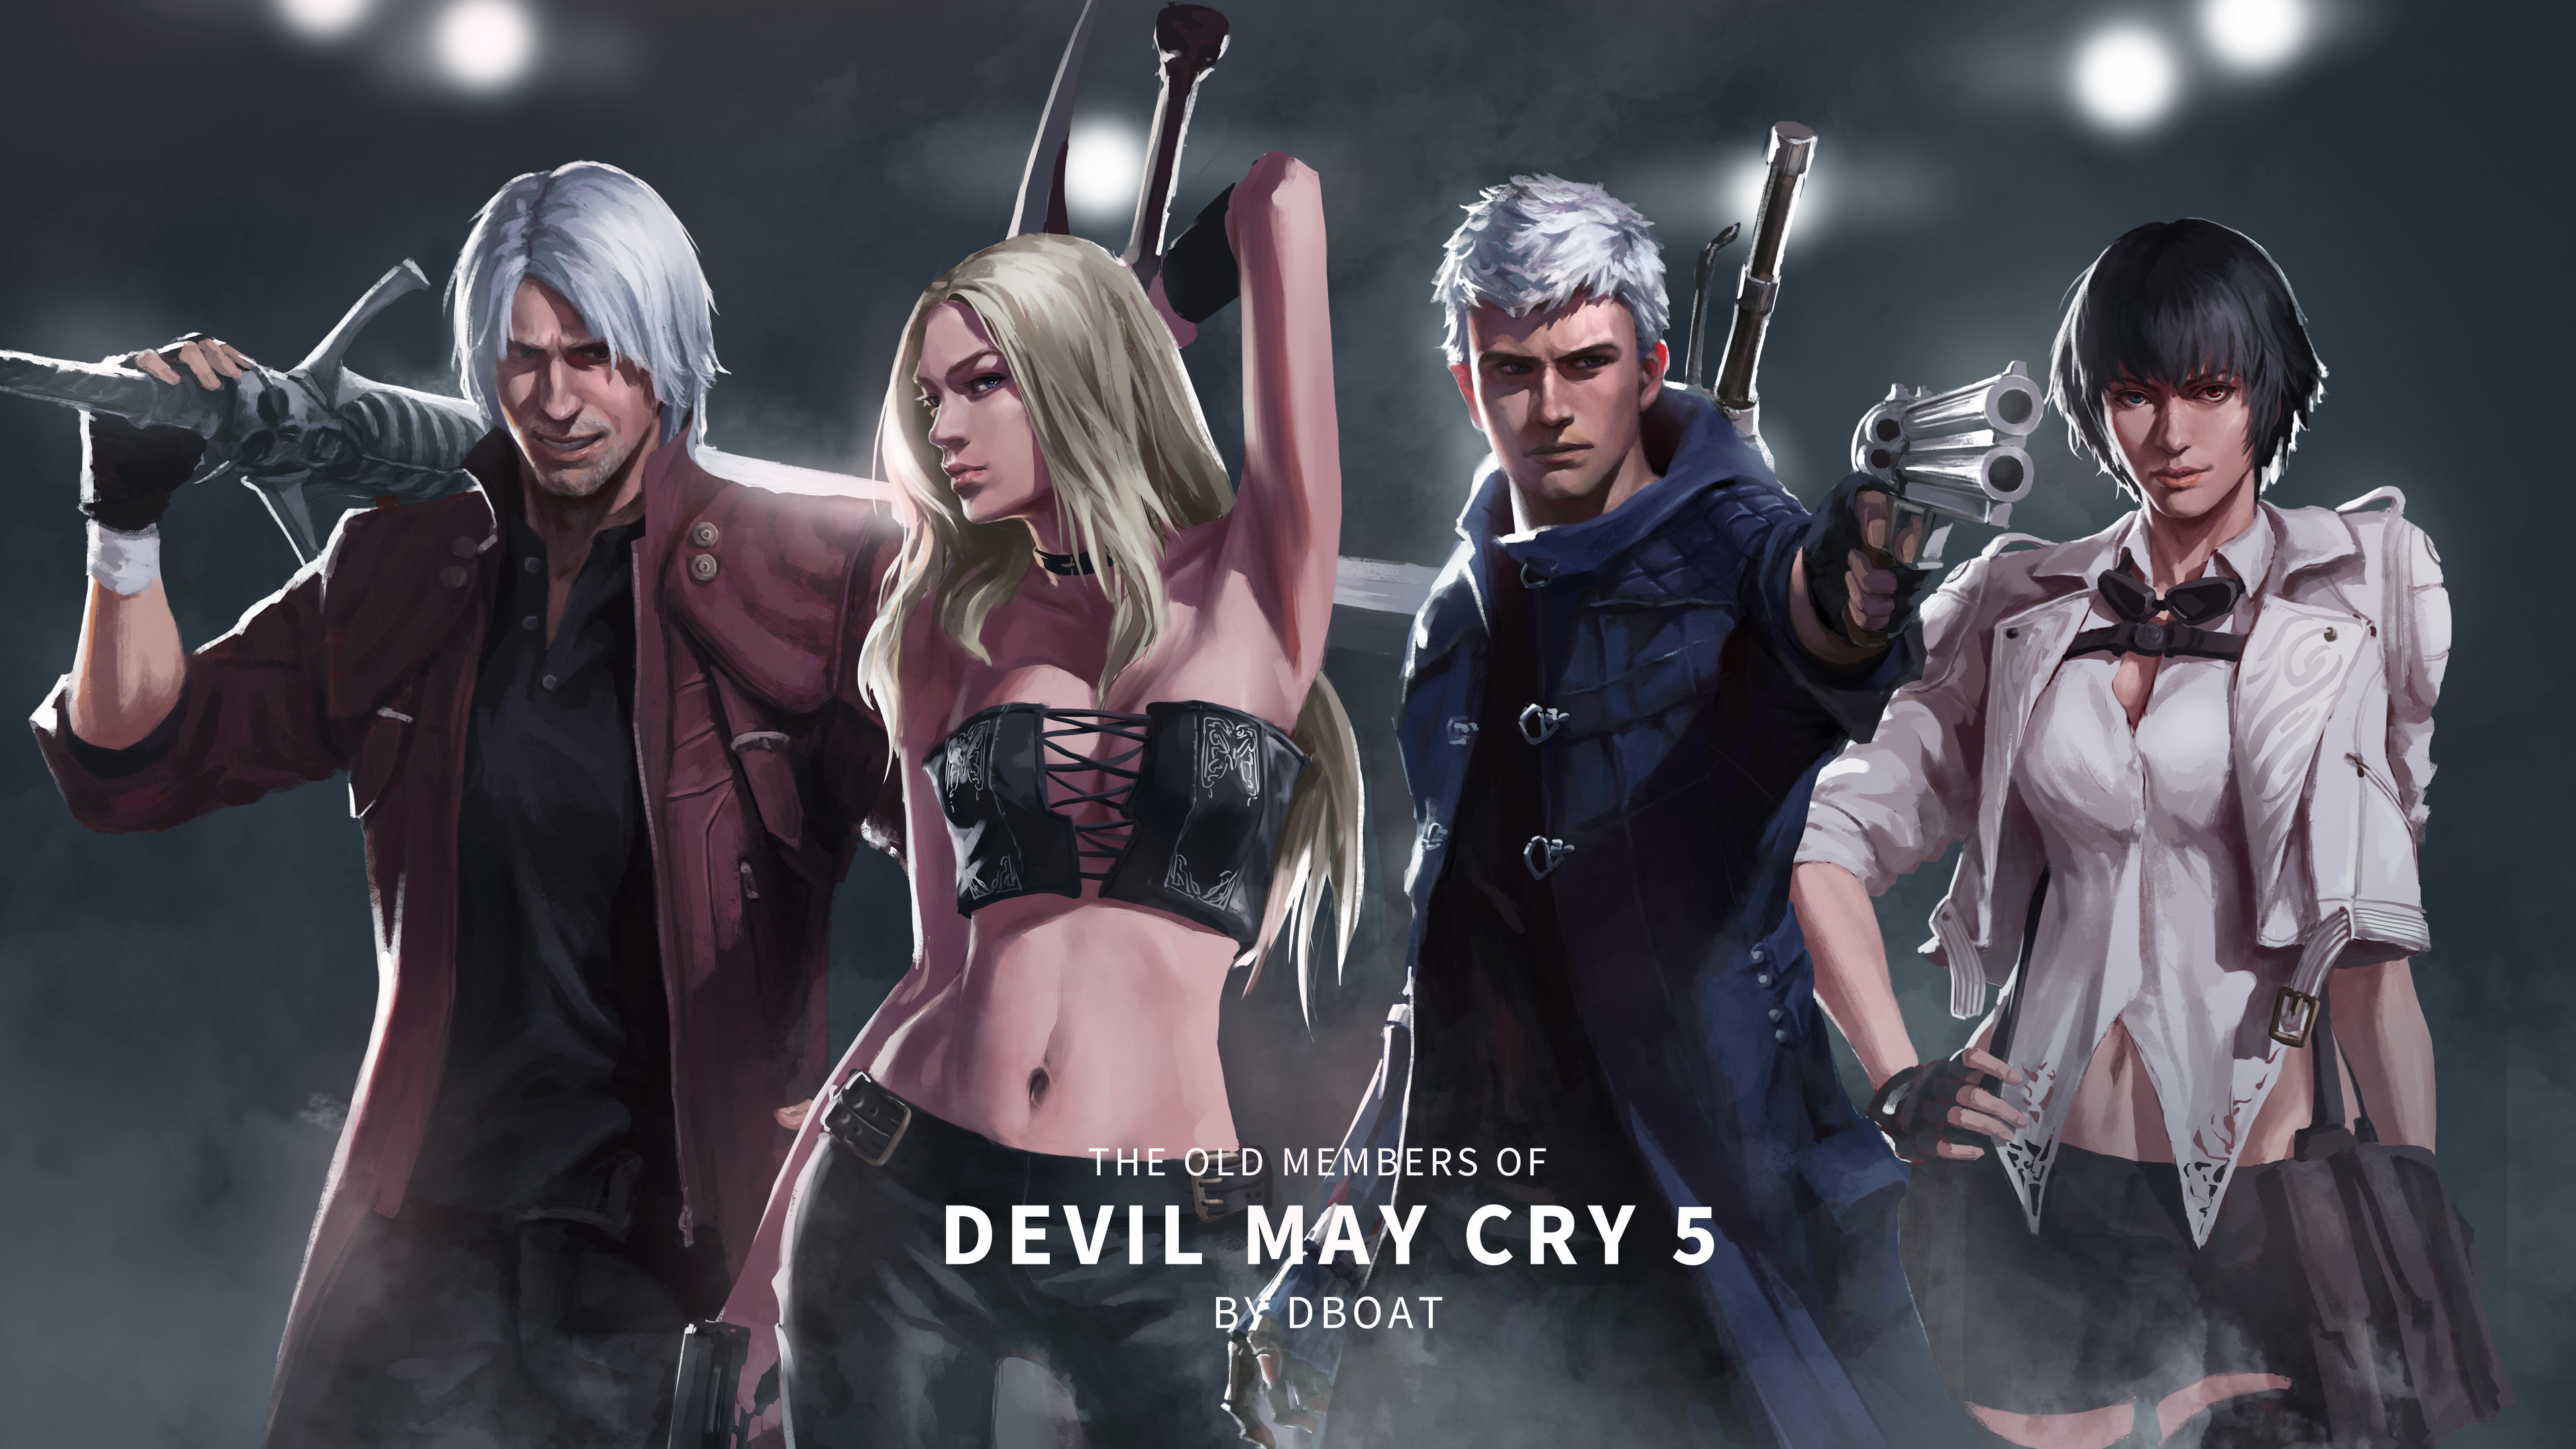 devil-may-cry-5-old-members-4k_1553074753.jpg - Devil May Cry 5